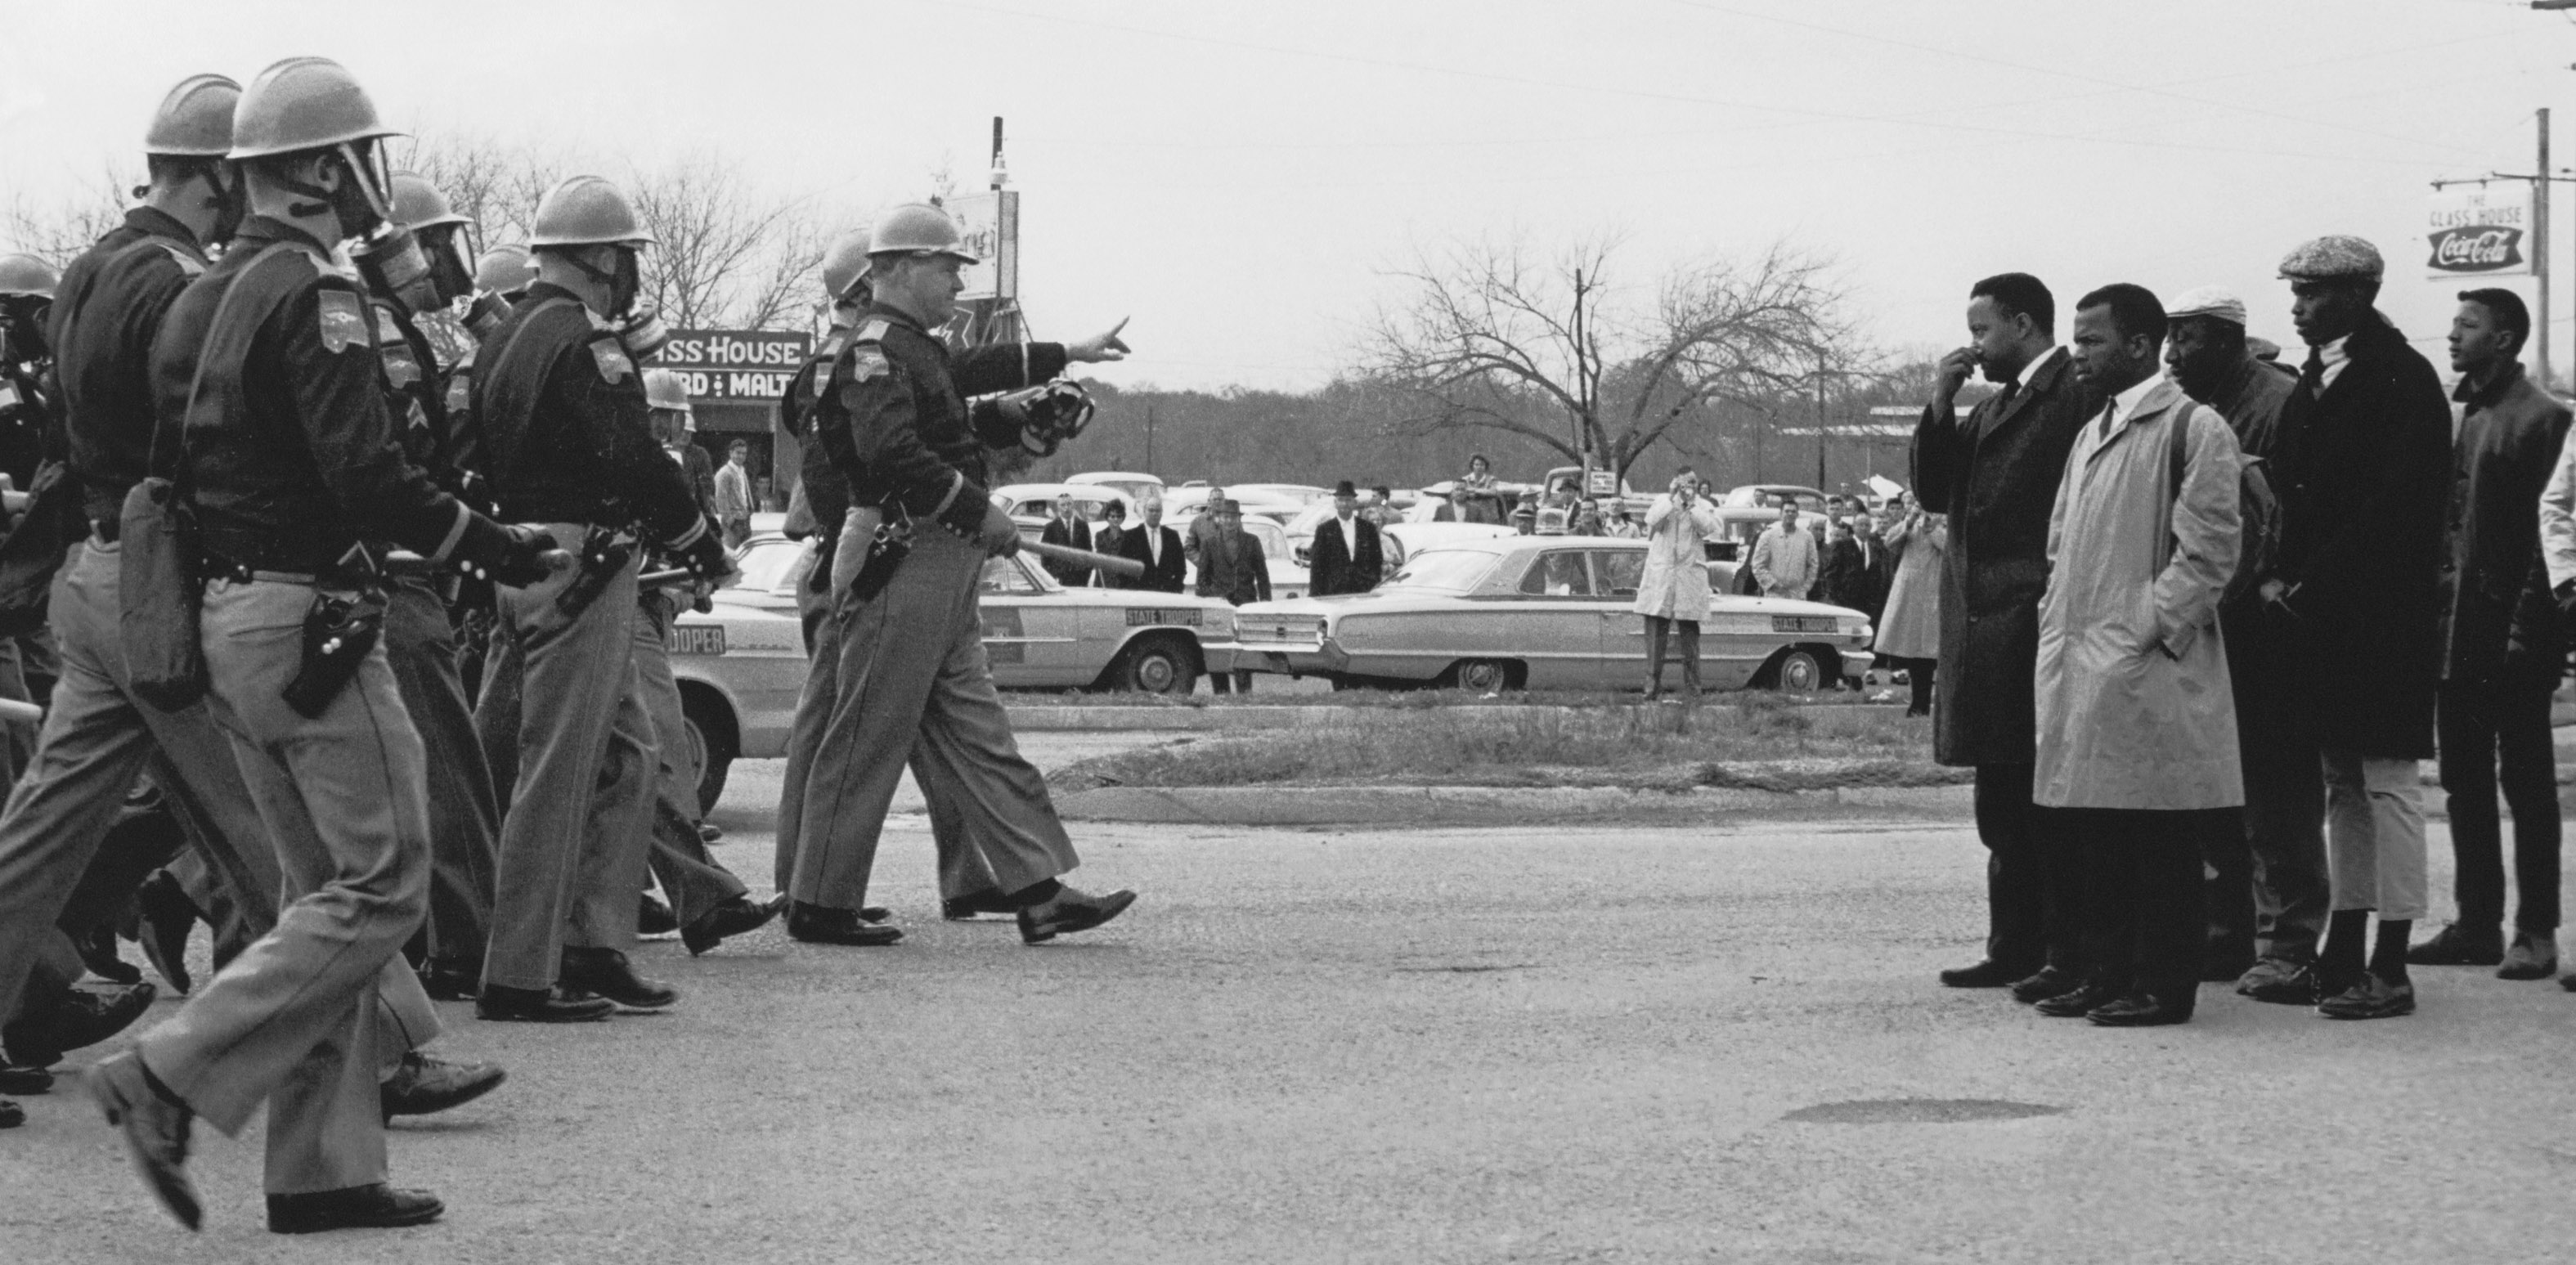 black and white photo of police officers facing a group of black men